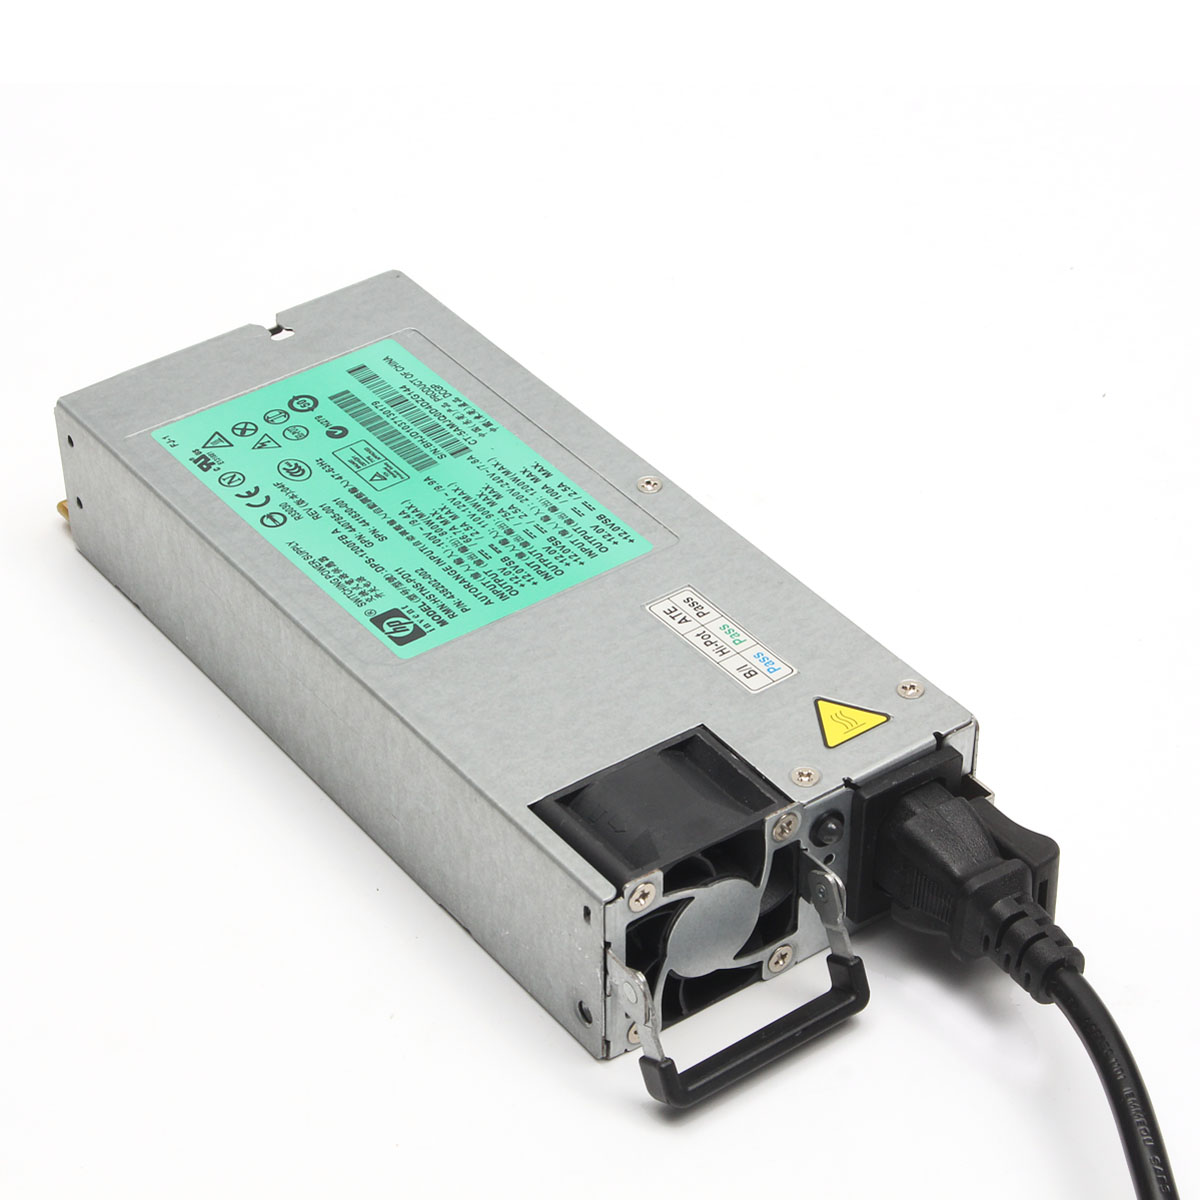 DPS 1200FB 1200W Power Supply w/ Breakout Adapter 12 Cables For Ethereum Mining